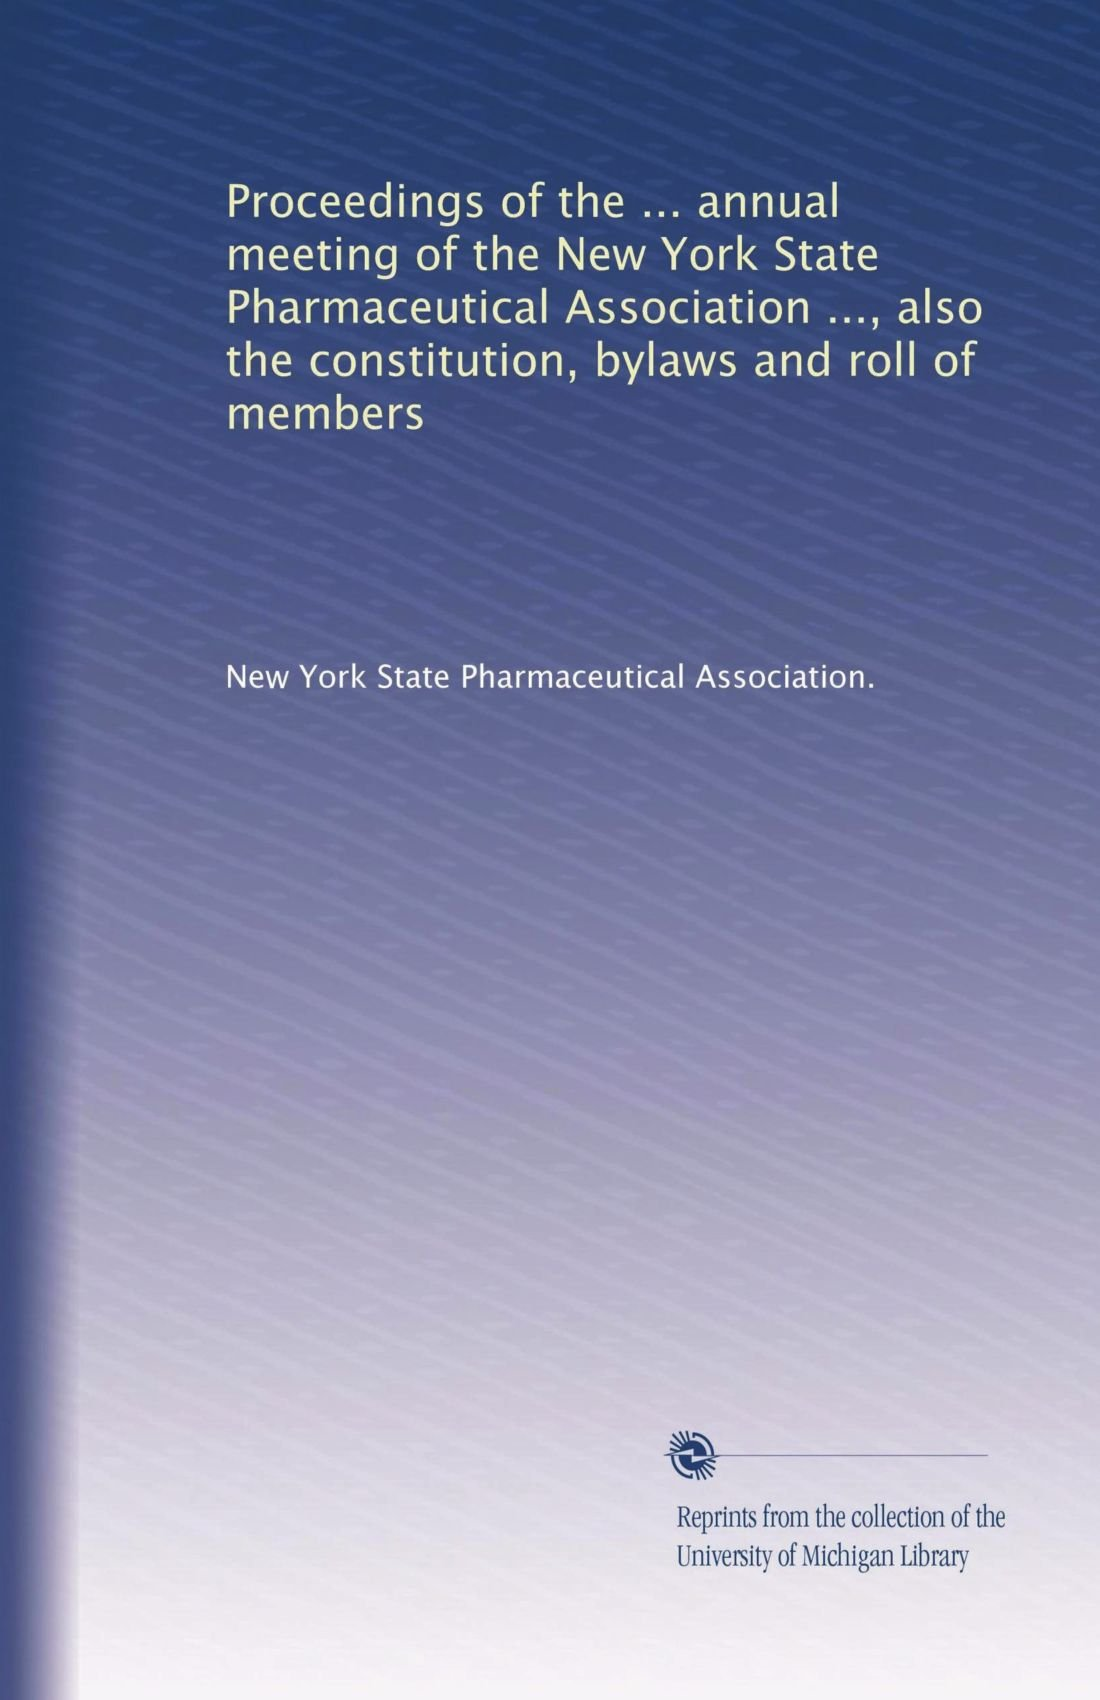 Proceedings of the ... annual meeting of the New York State Pharmaceutical Association ..., also the constitution, bylaws and roll of members (Volume 8) pdf